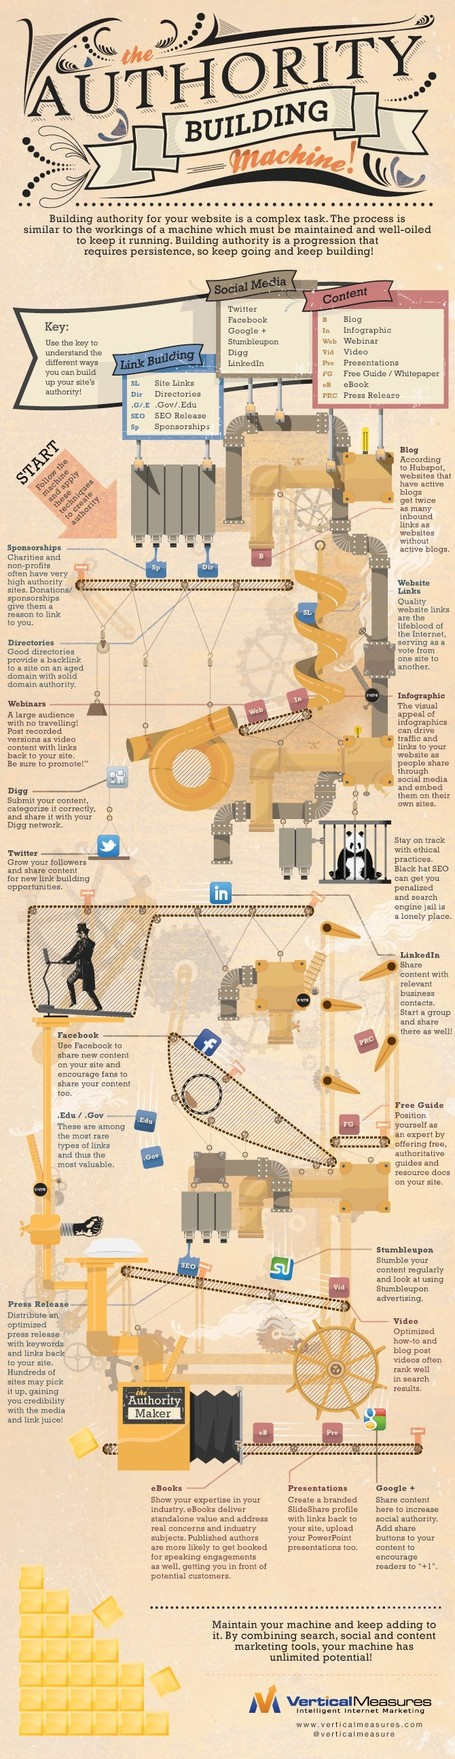 10+ Step by Step Guide in Creating Authority Building Machine | All Infographics | Social Mercor | Scoop.it